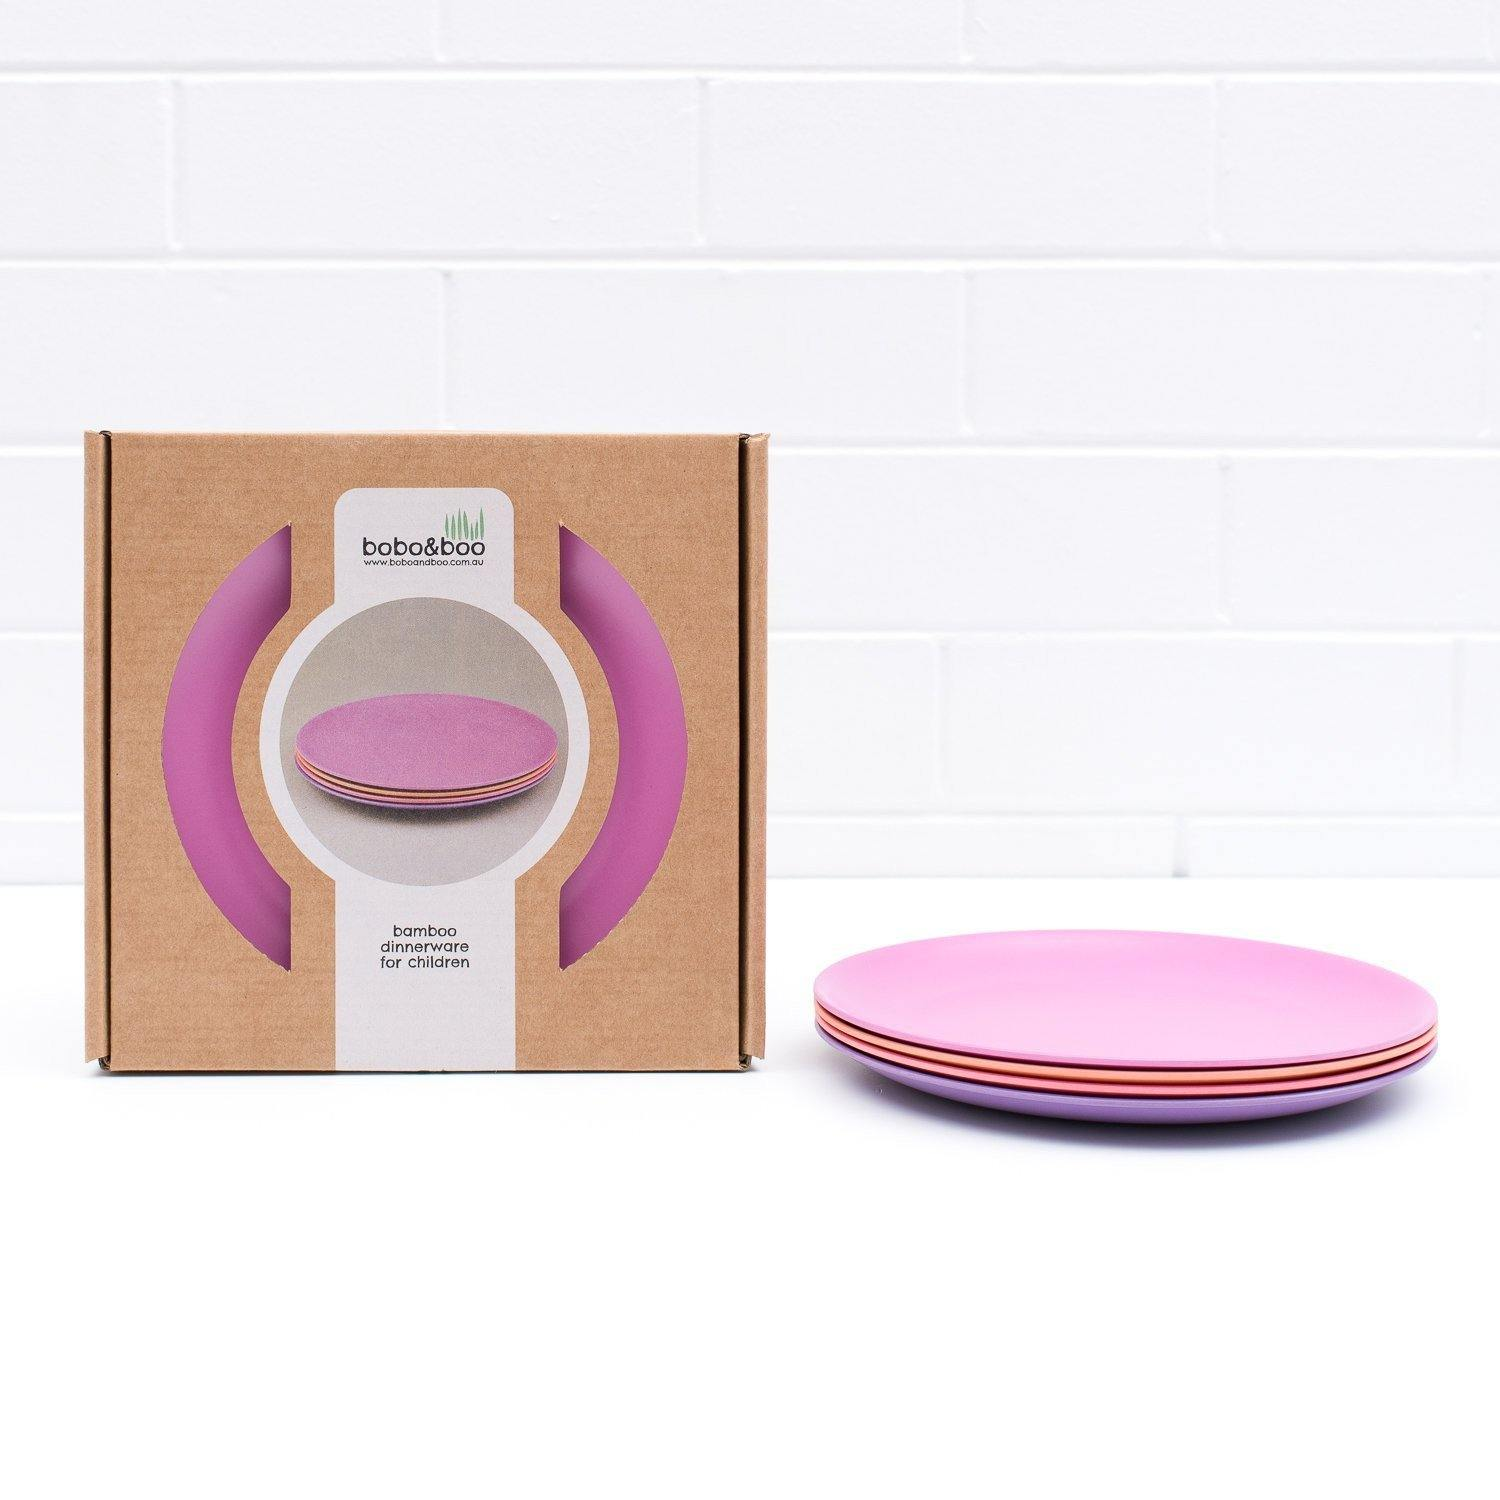 Bobo&boo Non-Toxic, BPA-Free set of 4 Bamboo Dinner plates for Babies, Toddler, kids & big-Kids - Sunset - indieprojectstore